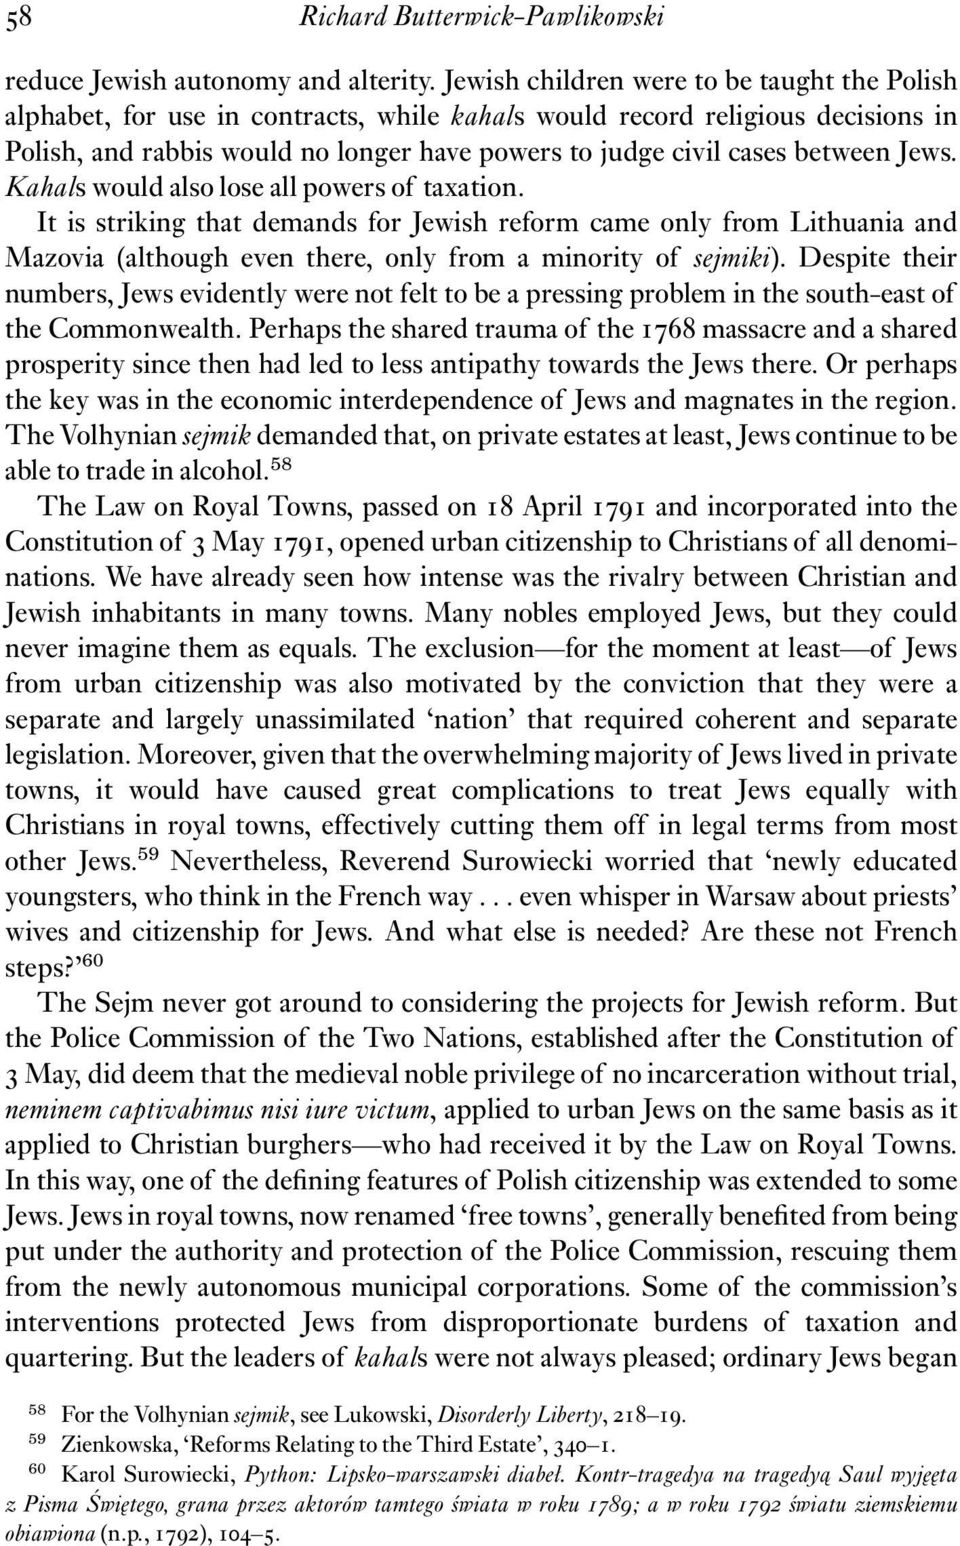 between Jews. Kahals would also lose all powers of taxation. It is striking that demands for Jewish reform came only from Lithuania and Mazovia (although even there, only from a minority of sejmiki).